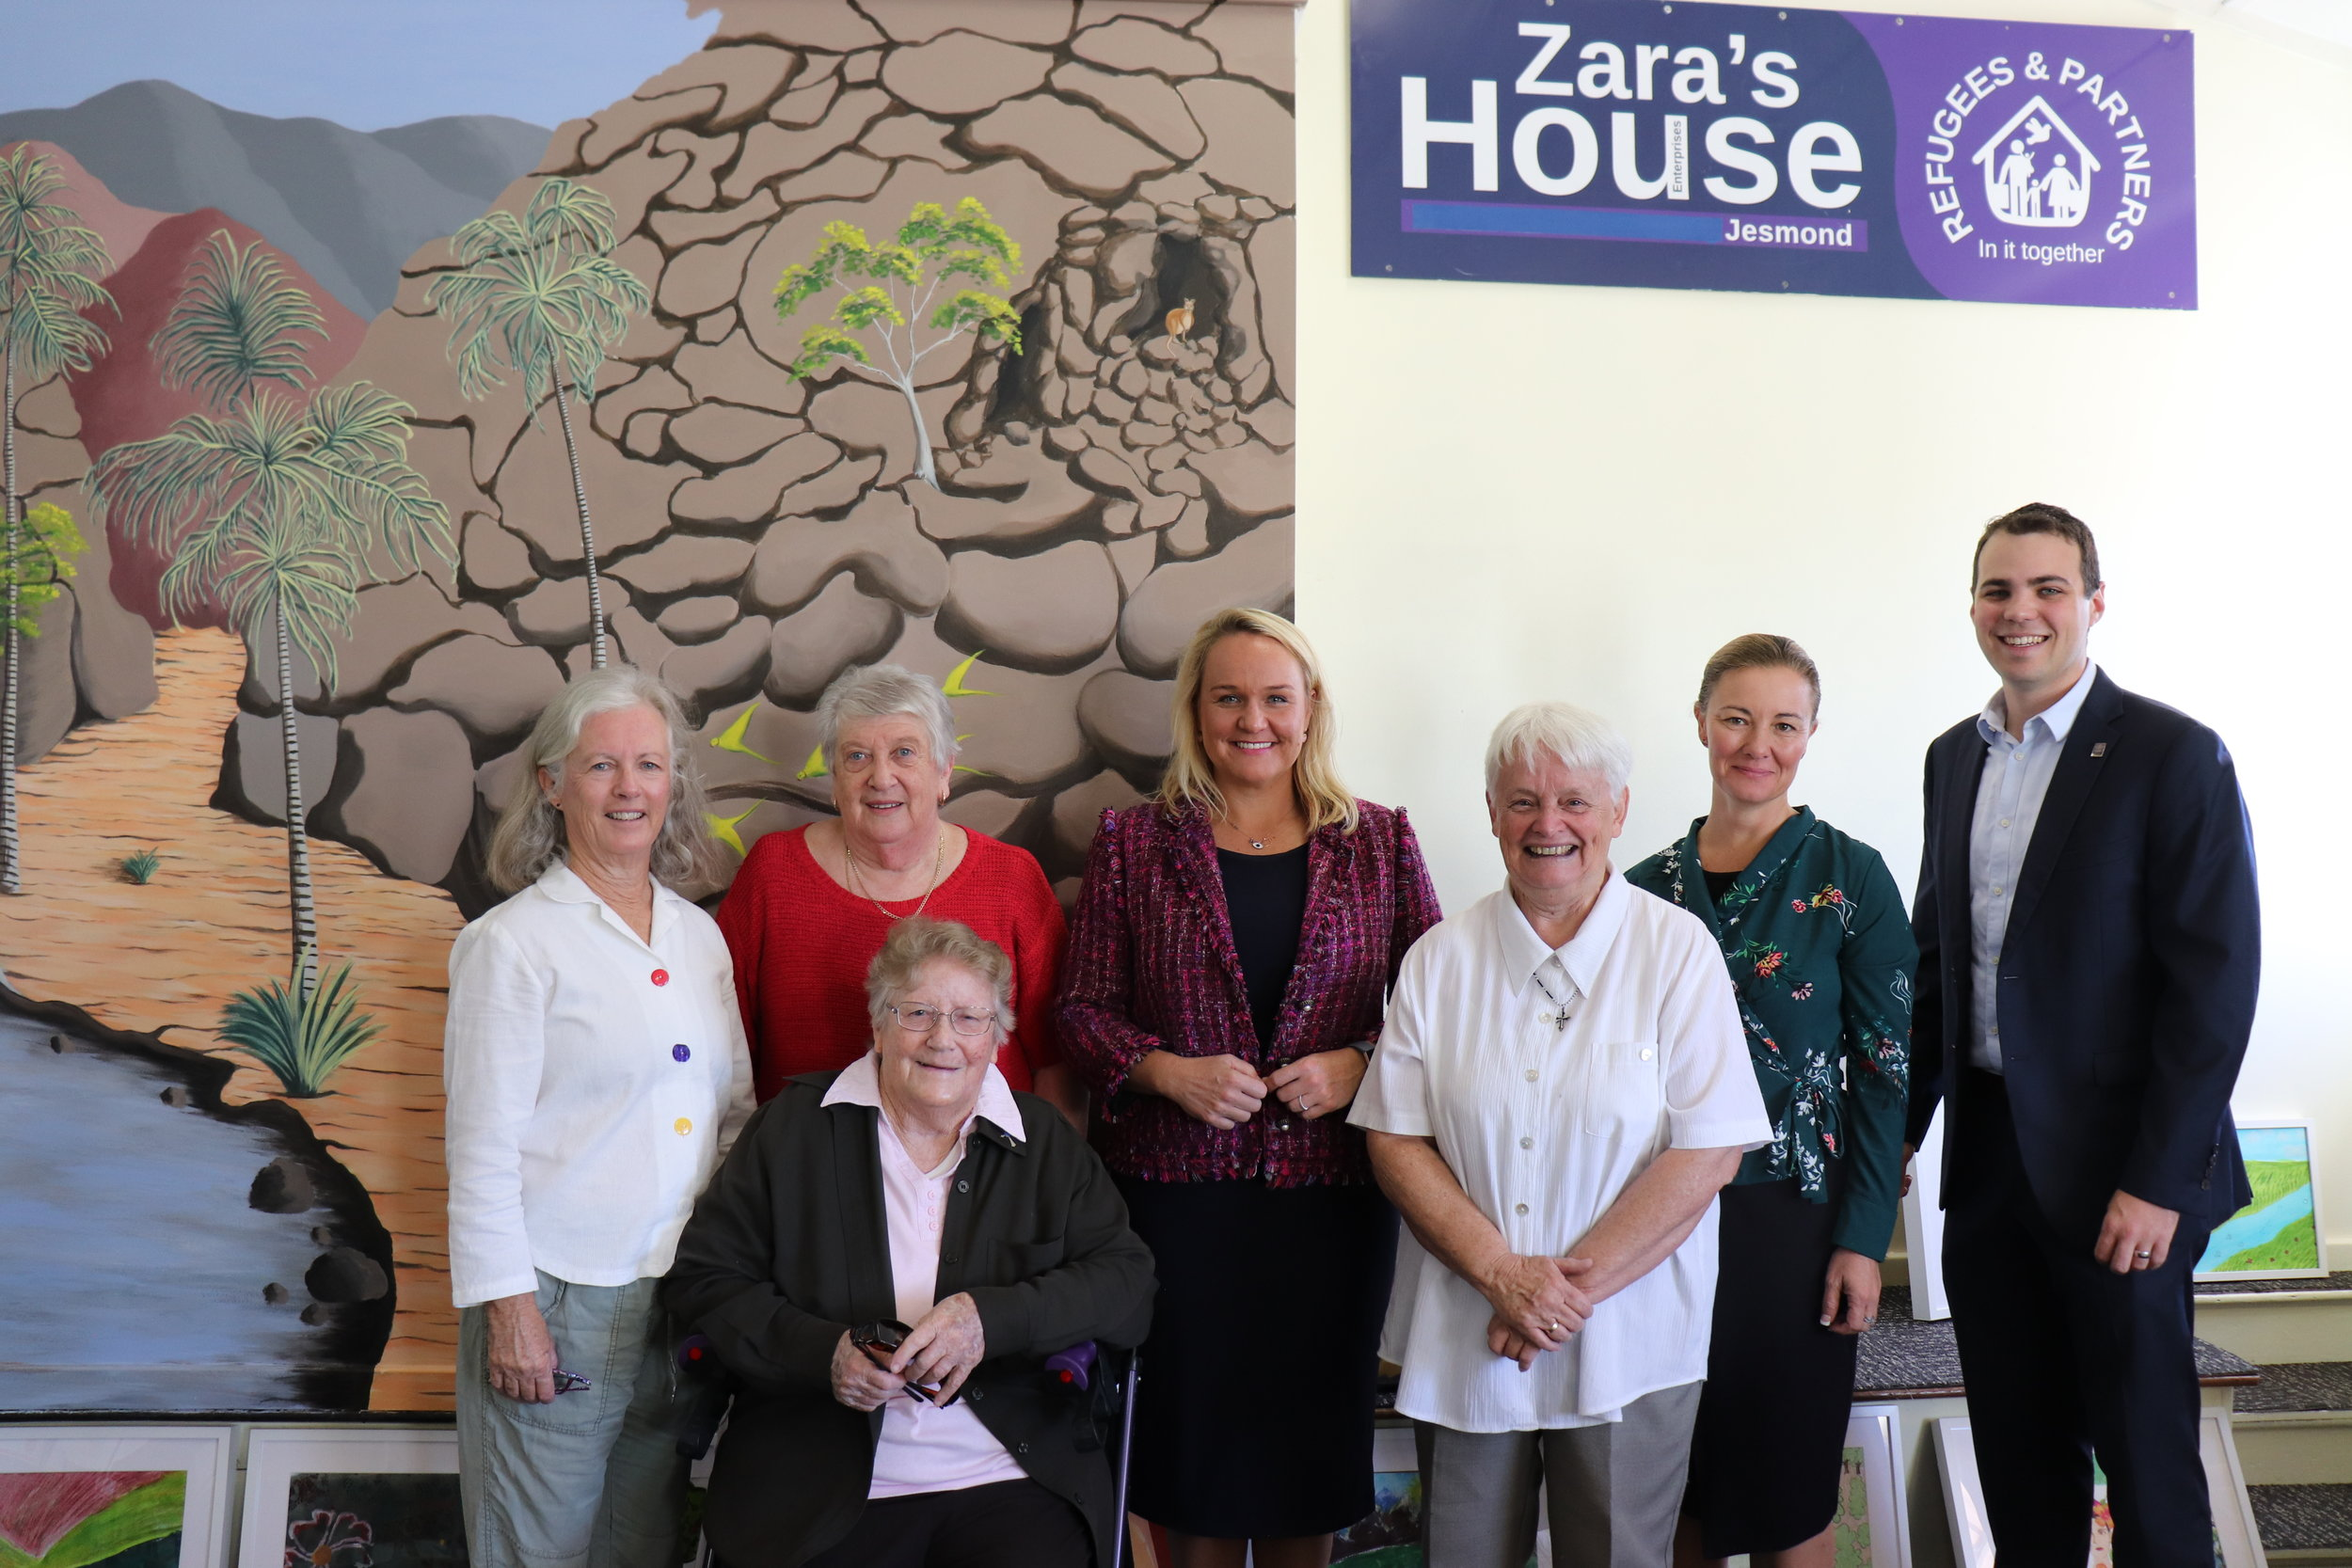 Lord Mayor Cr Nuatali Nelmes, Deputy Lord Mayor Cr Declan Clausen and Cr Peta Winney-Baartz pictured with Zara's House Founder and Director, Sister Di Santleben and the Zara's House Executive